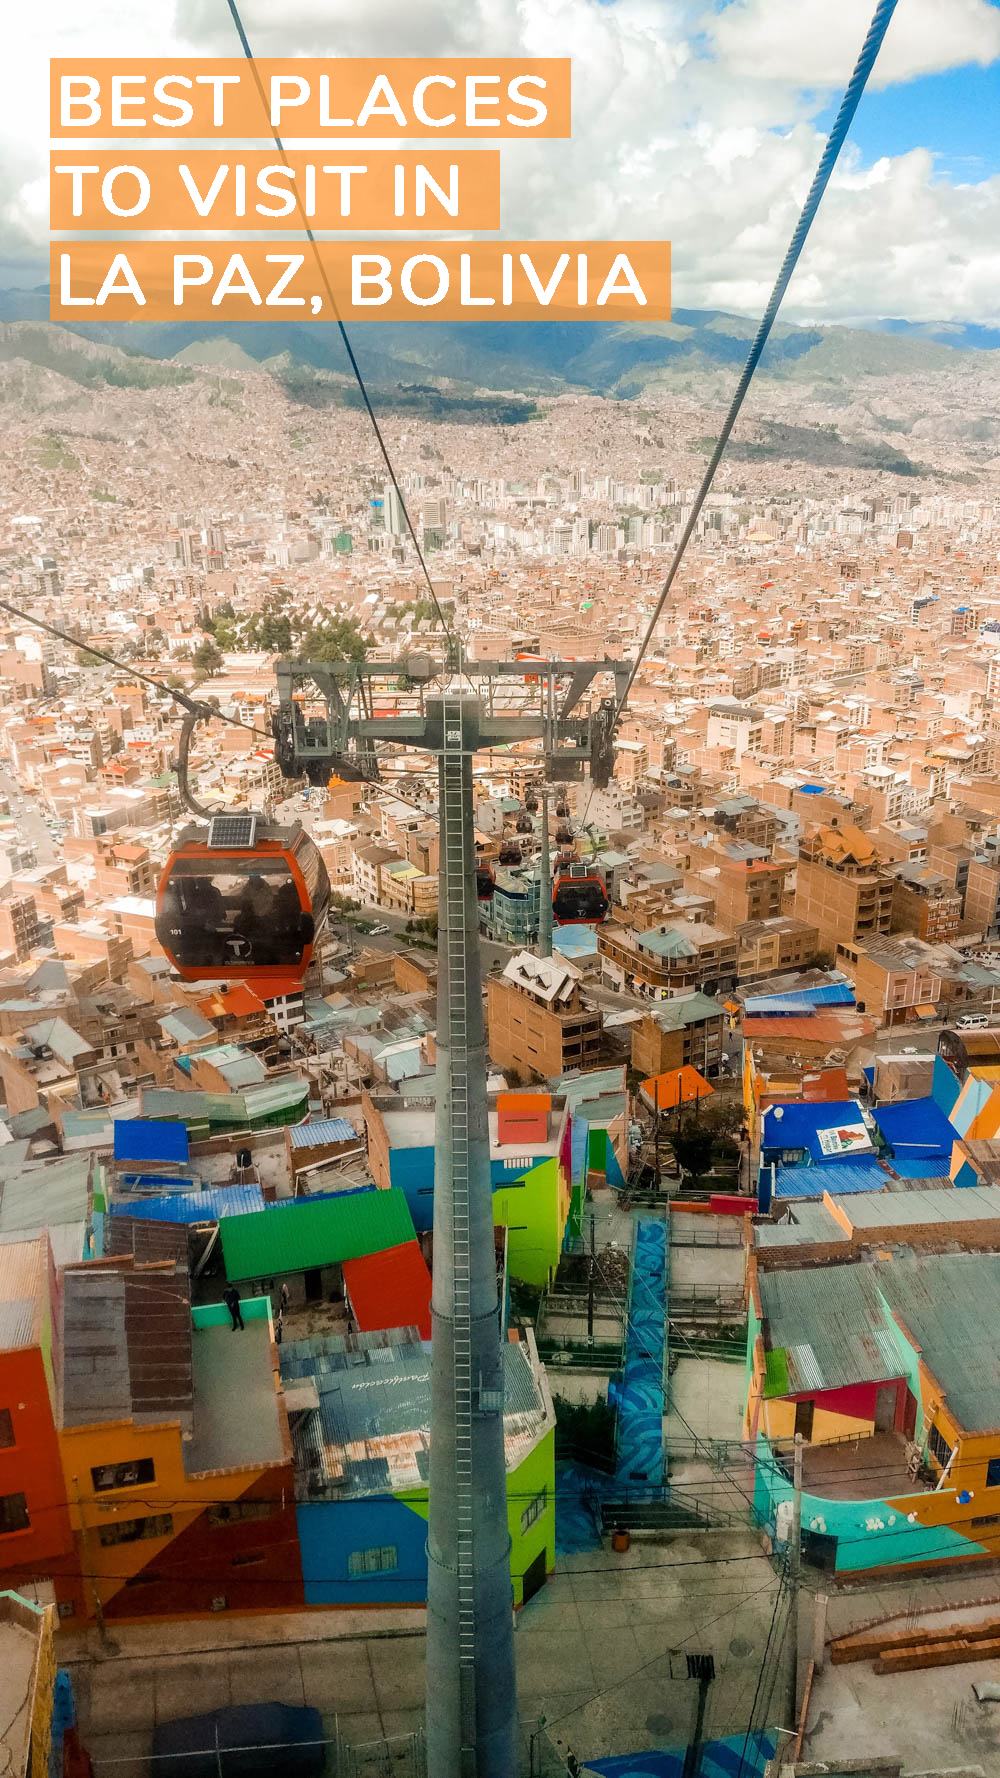 Best places to visit in La Paz, Bolivia | Aliz's Wonderland